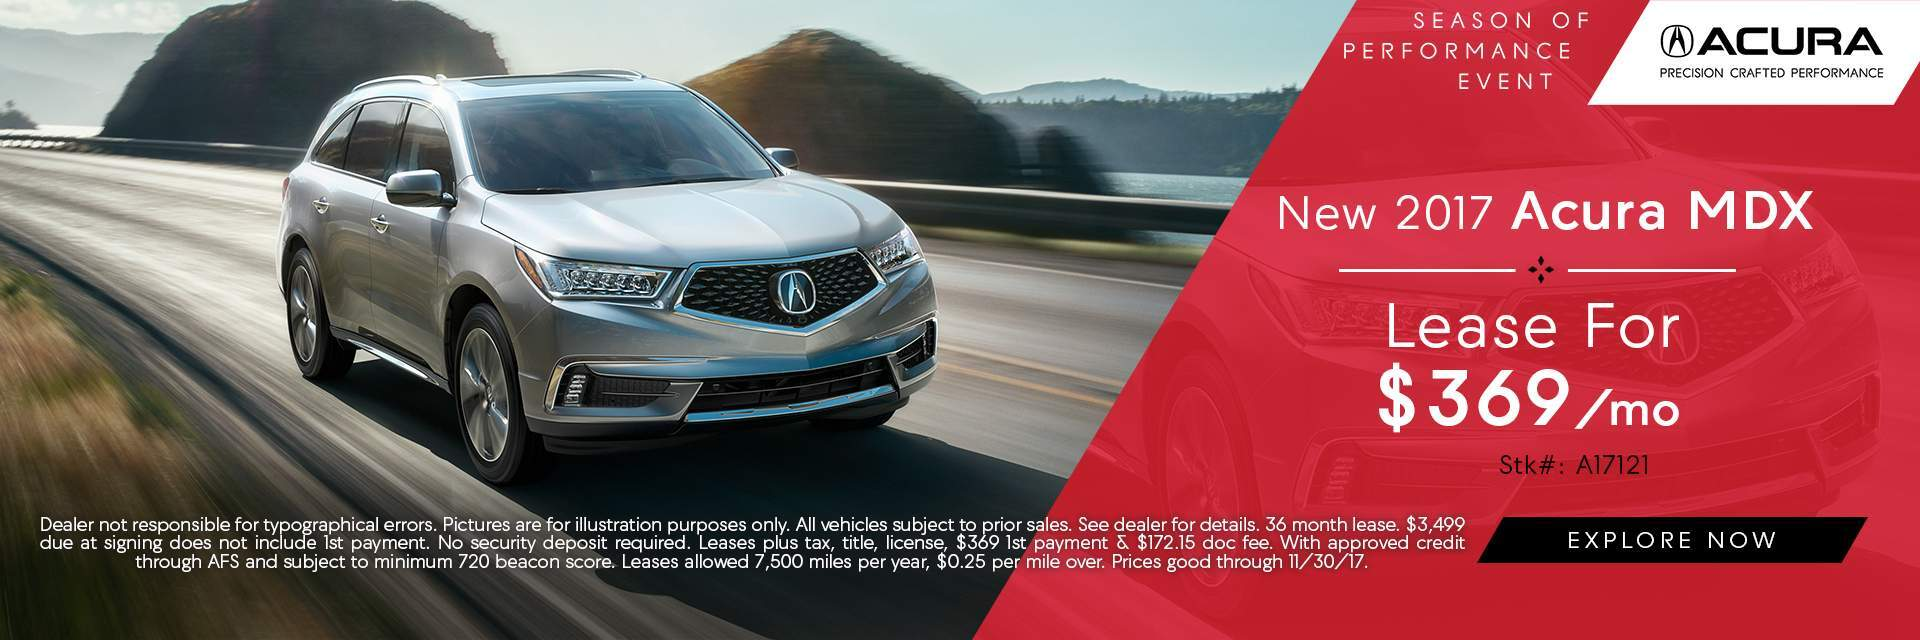 2017 MDX Lease